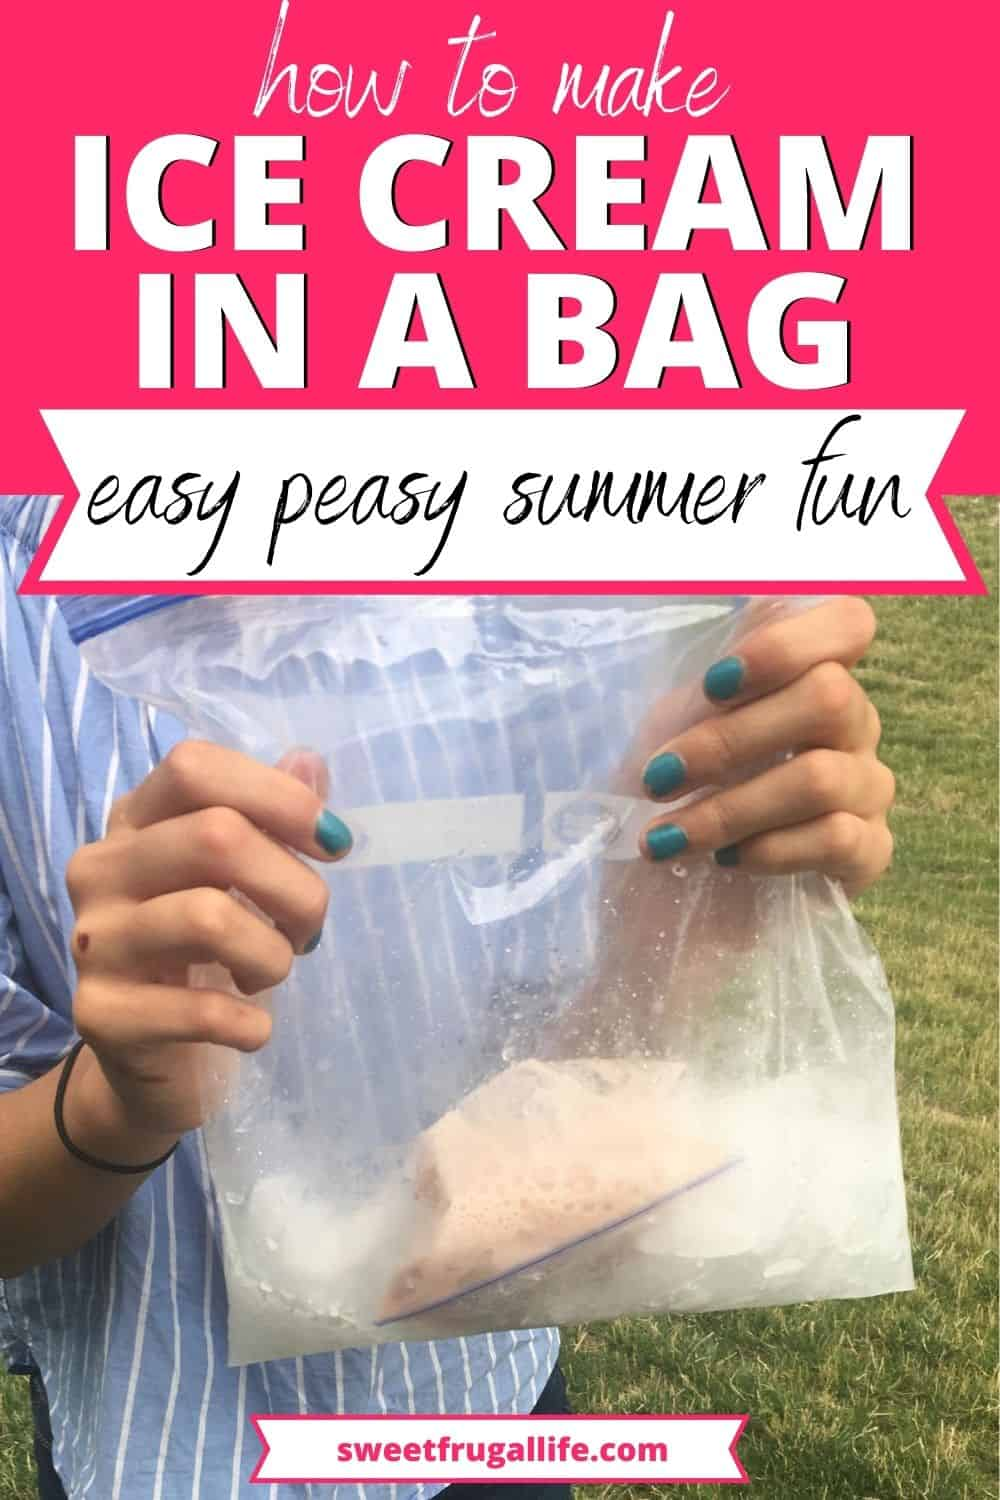 how to make ice cream in a bag - what is ice cream in a bag